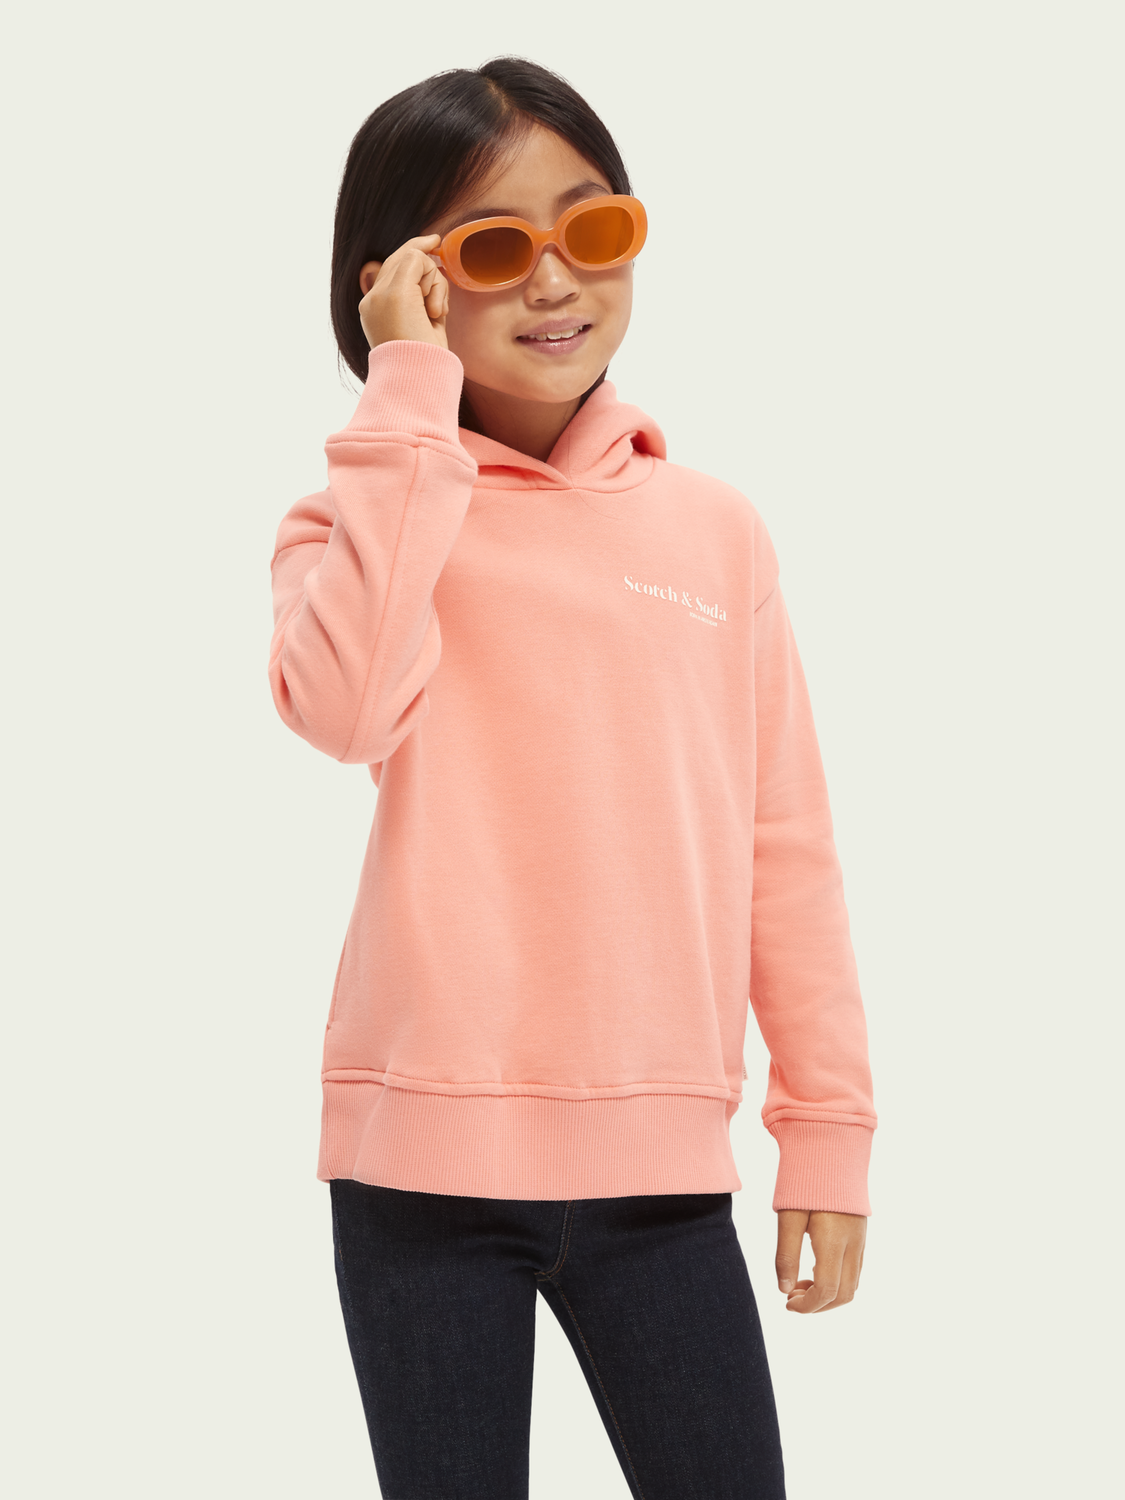 Kinder Hoodie im Relaxed Fit